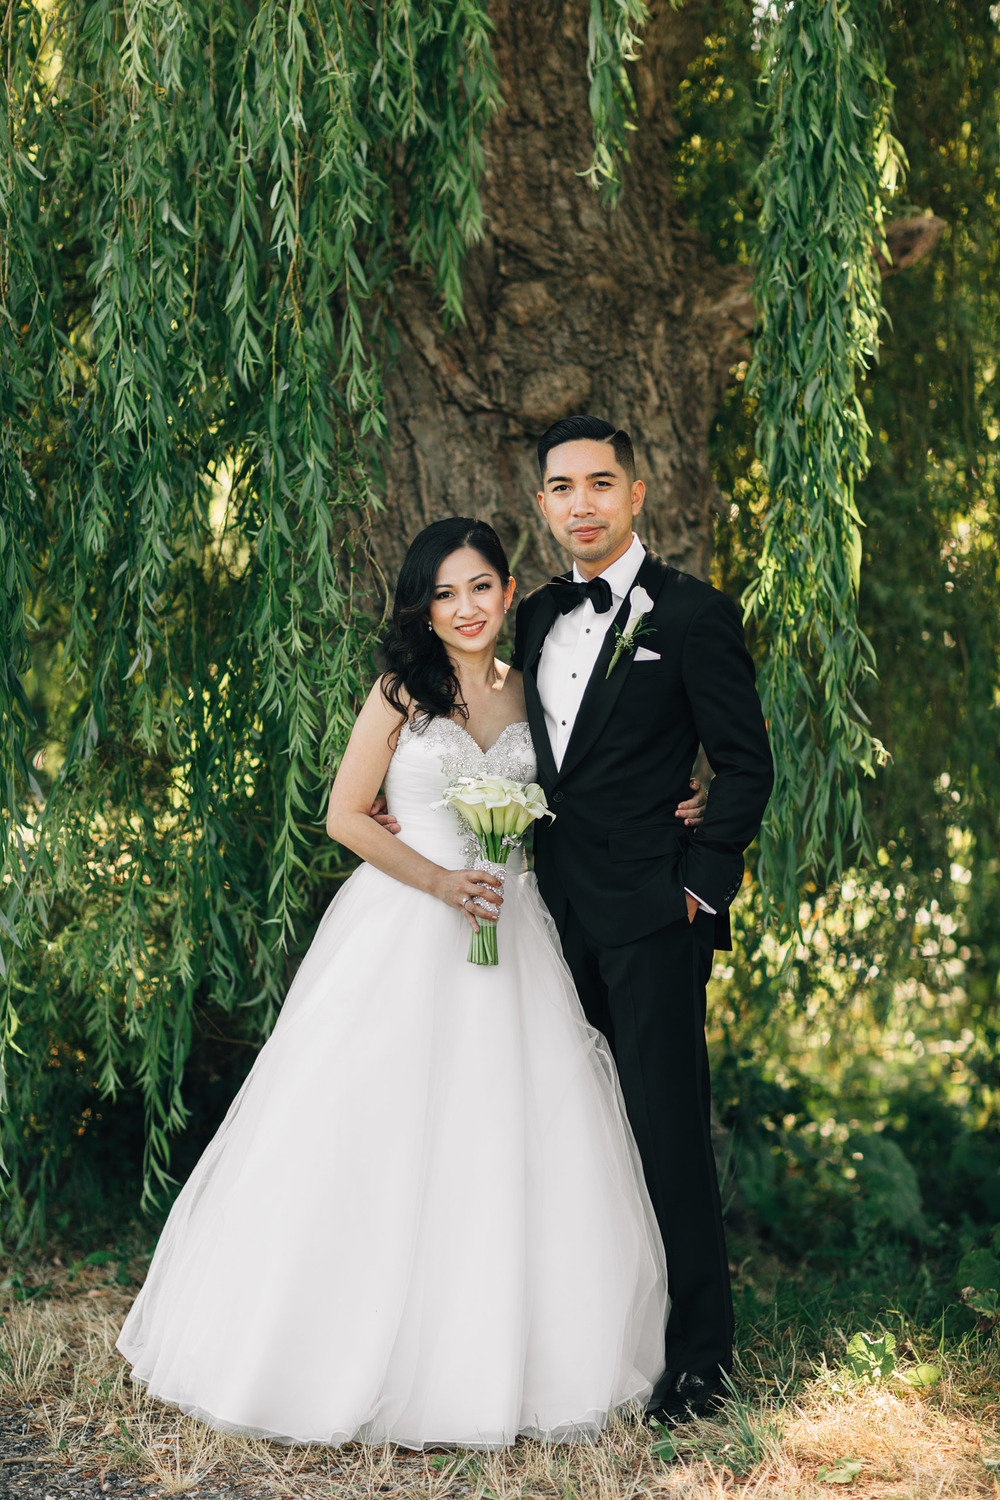 richmond wedding photographer noyo creative filipino bride groom